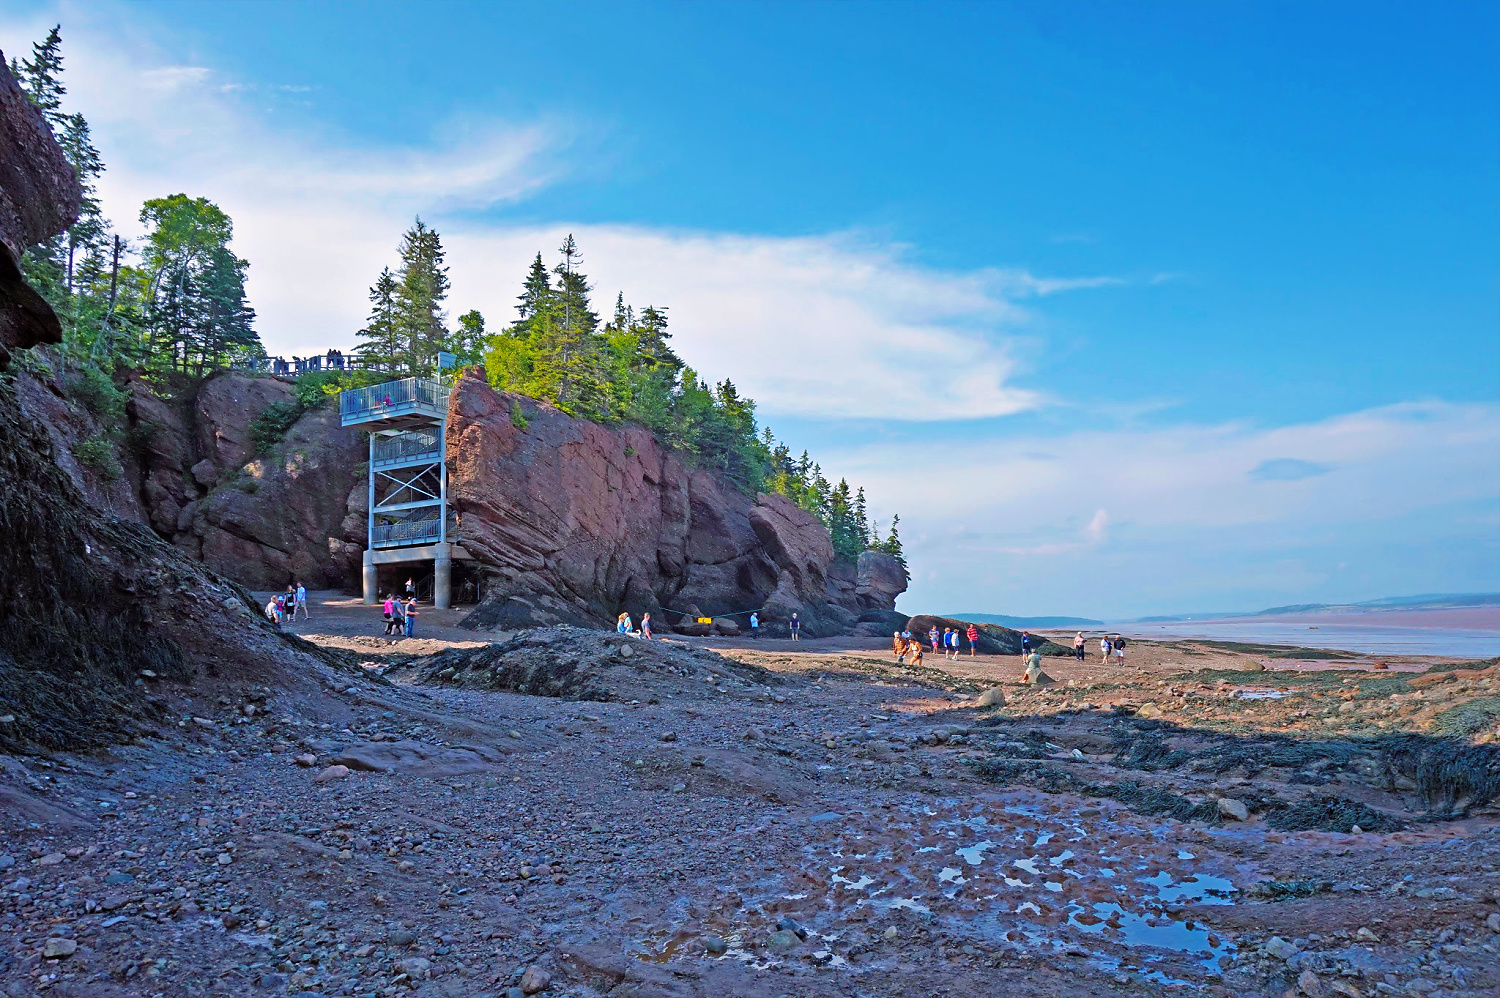 Bay of Fundy. People are enjoying their time walking on the ocean floor at the Hopewell Rocks in New Brunswick.